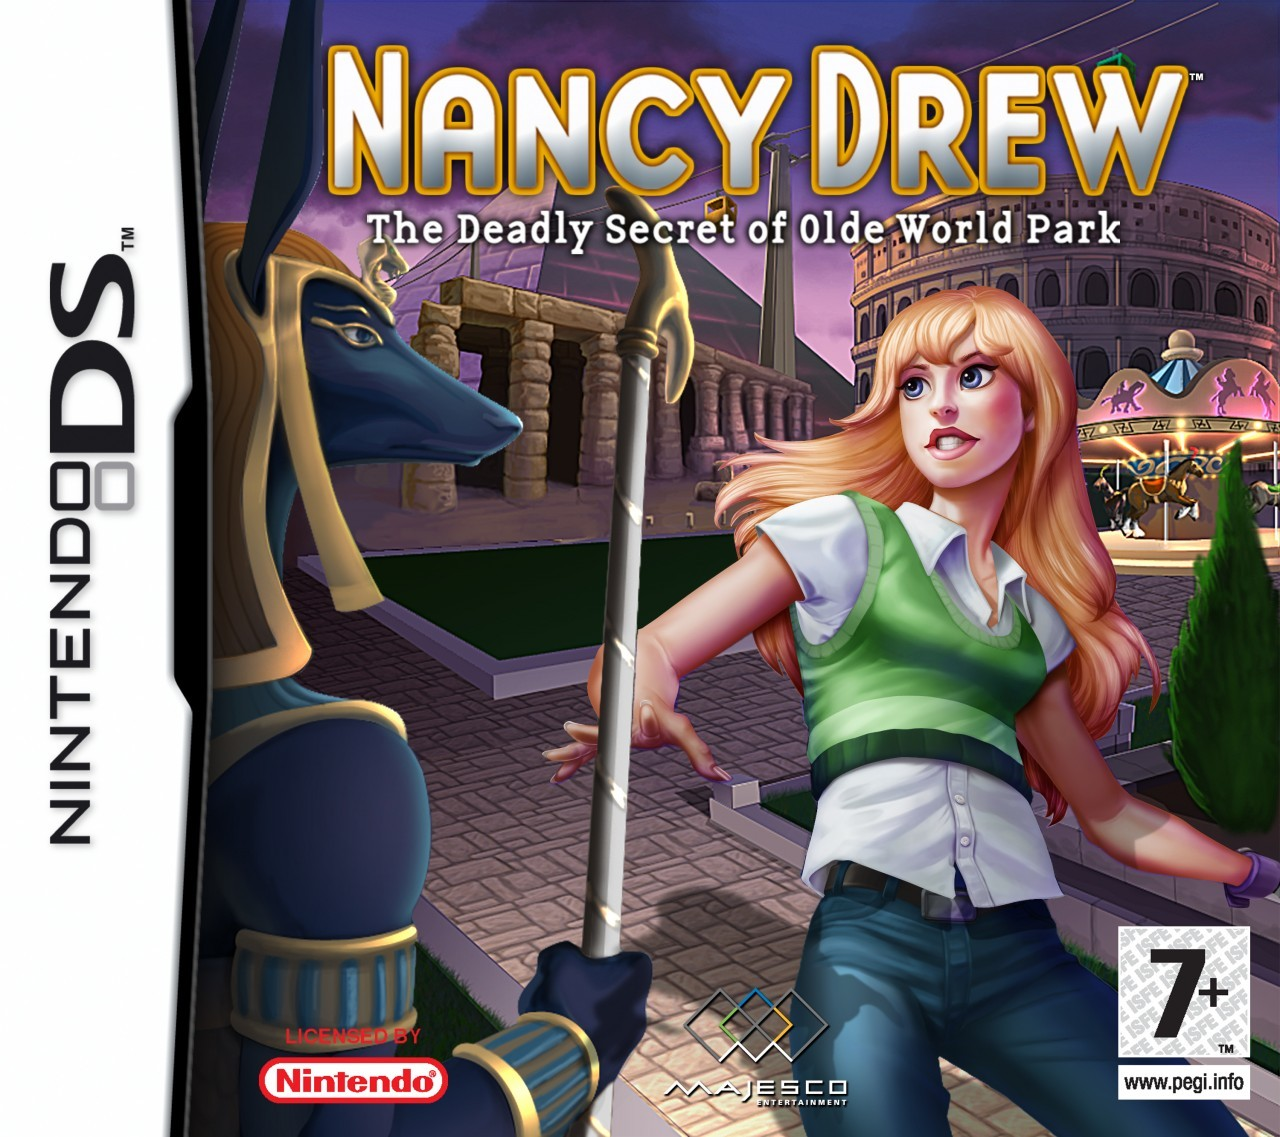 NANCY DREW #5 THE SECRET AT SHADOW RANCH w/DJ WHITE SPINE